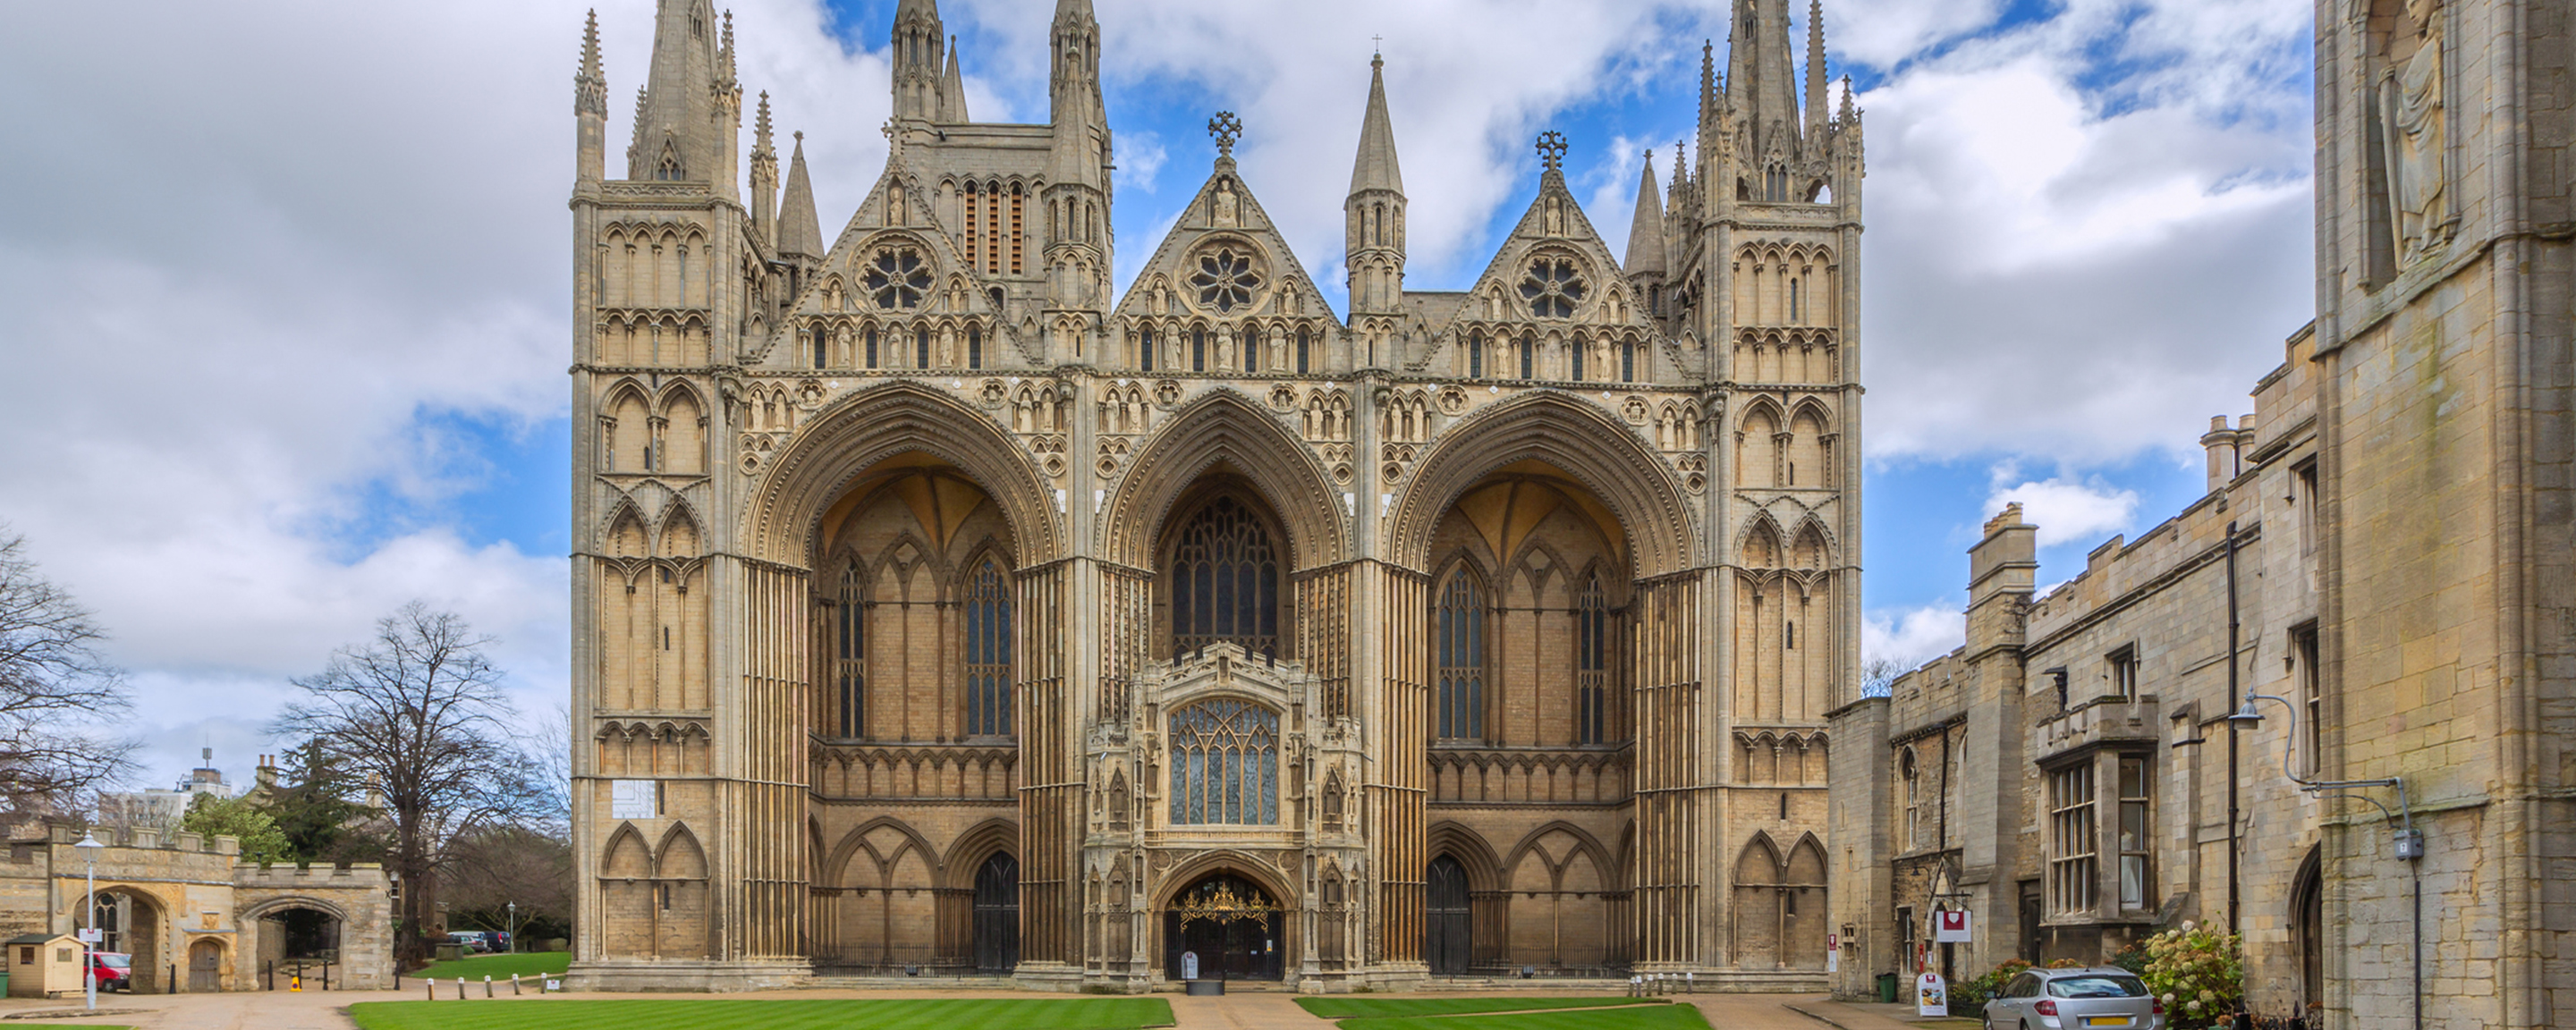 a large stone statue in front of a church with Peterborough Cathedral in the background